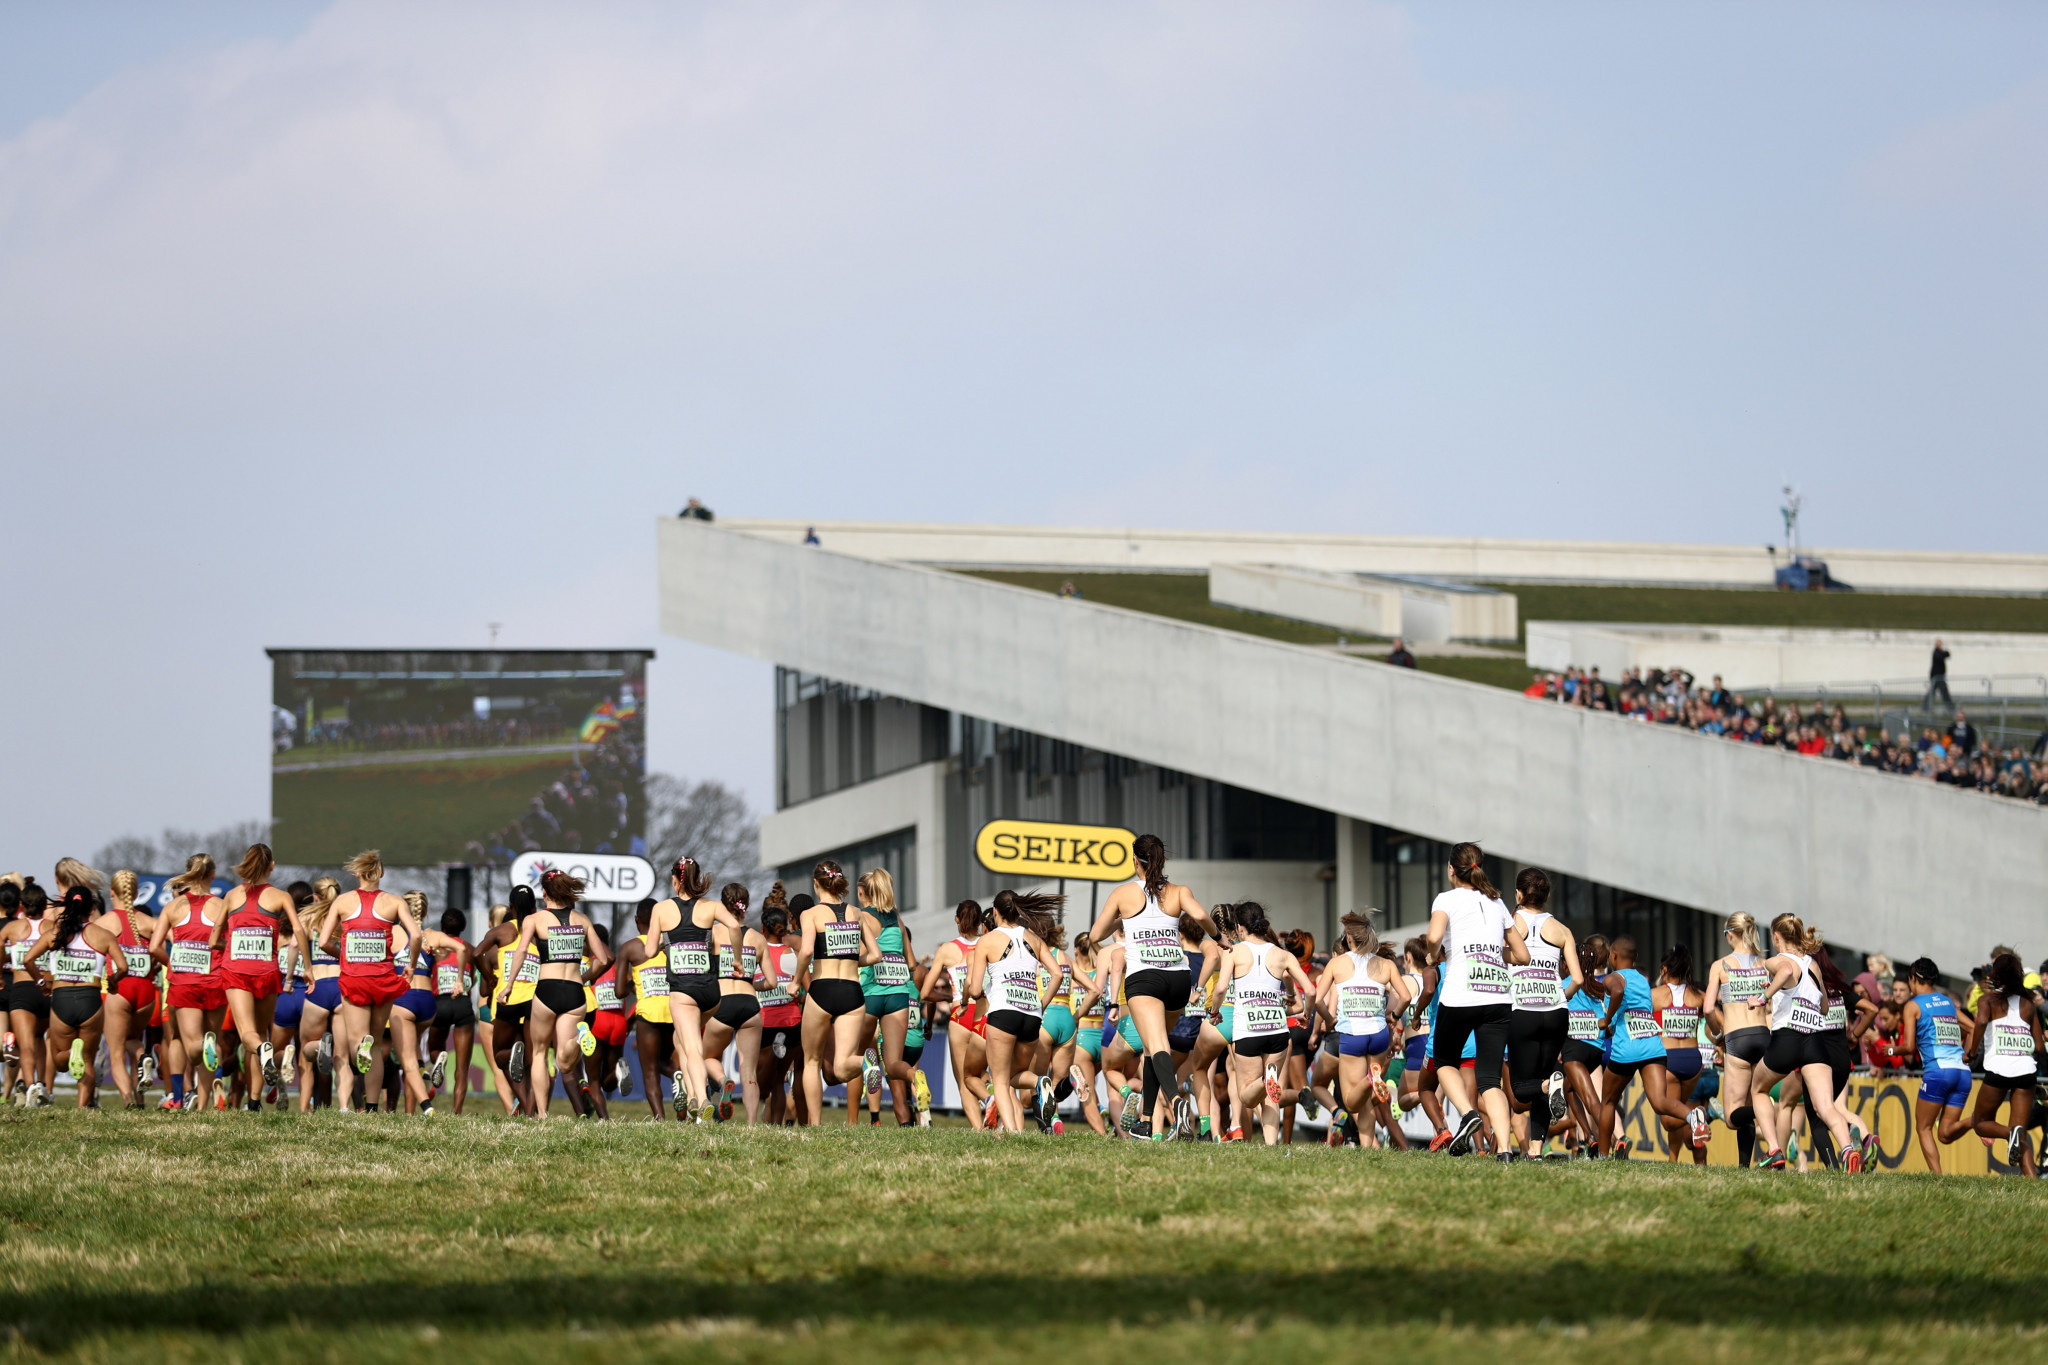 Runners tackle testing course at World Cross-Country Championships